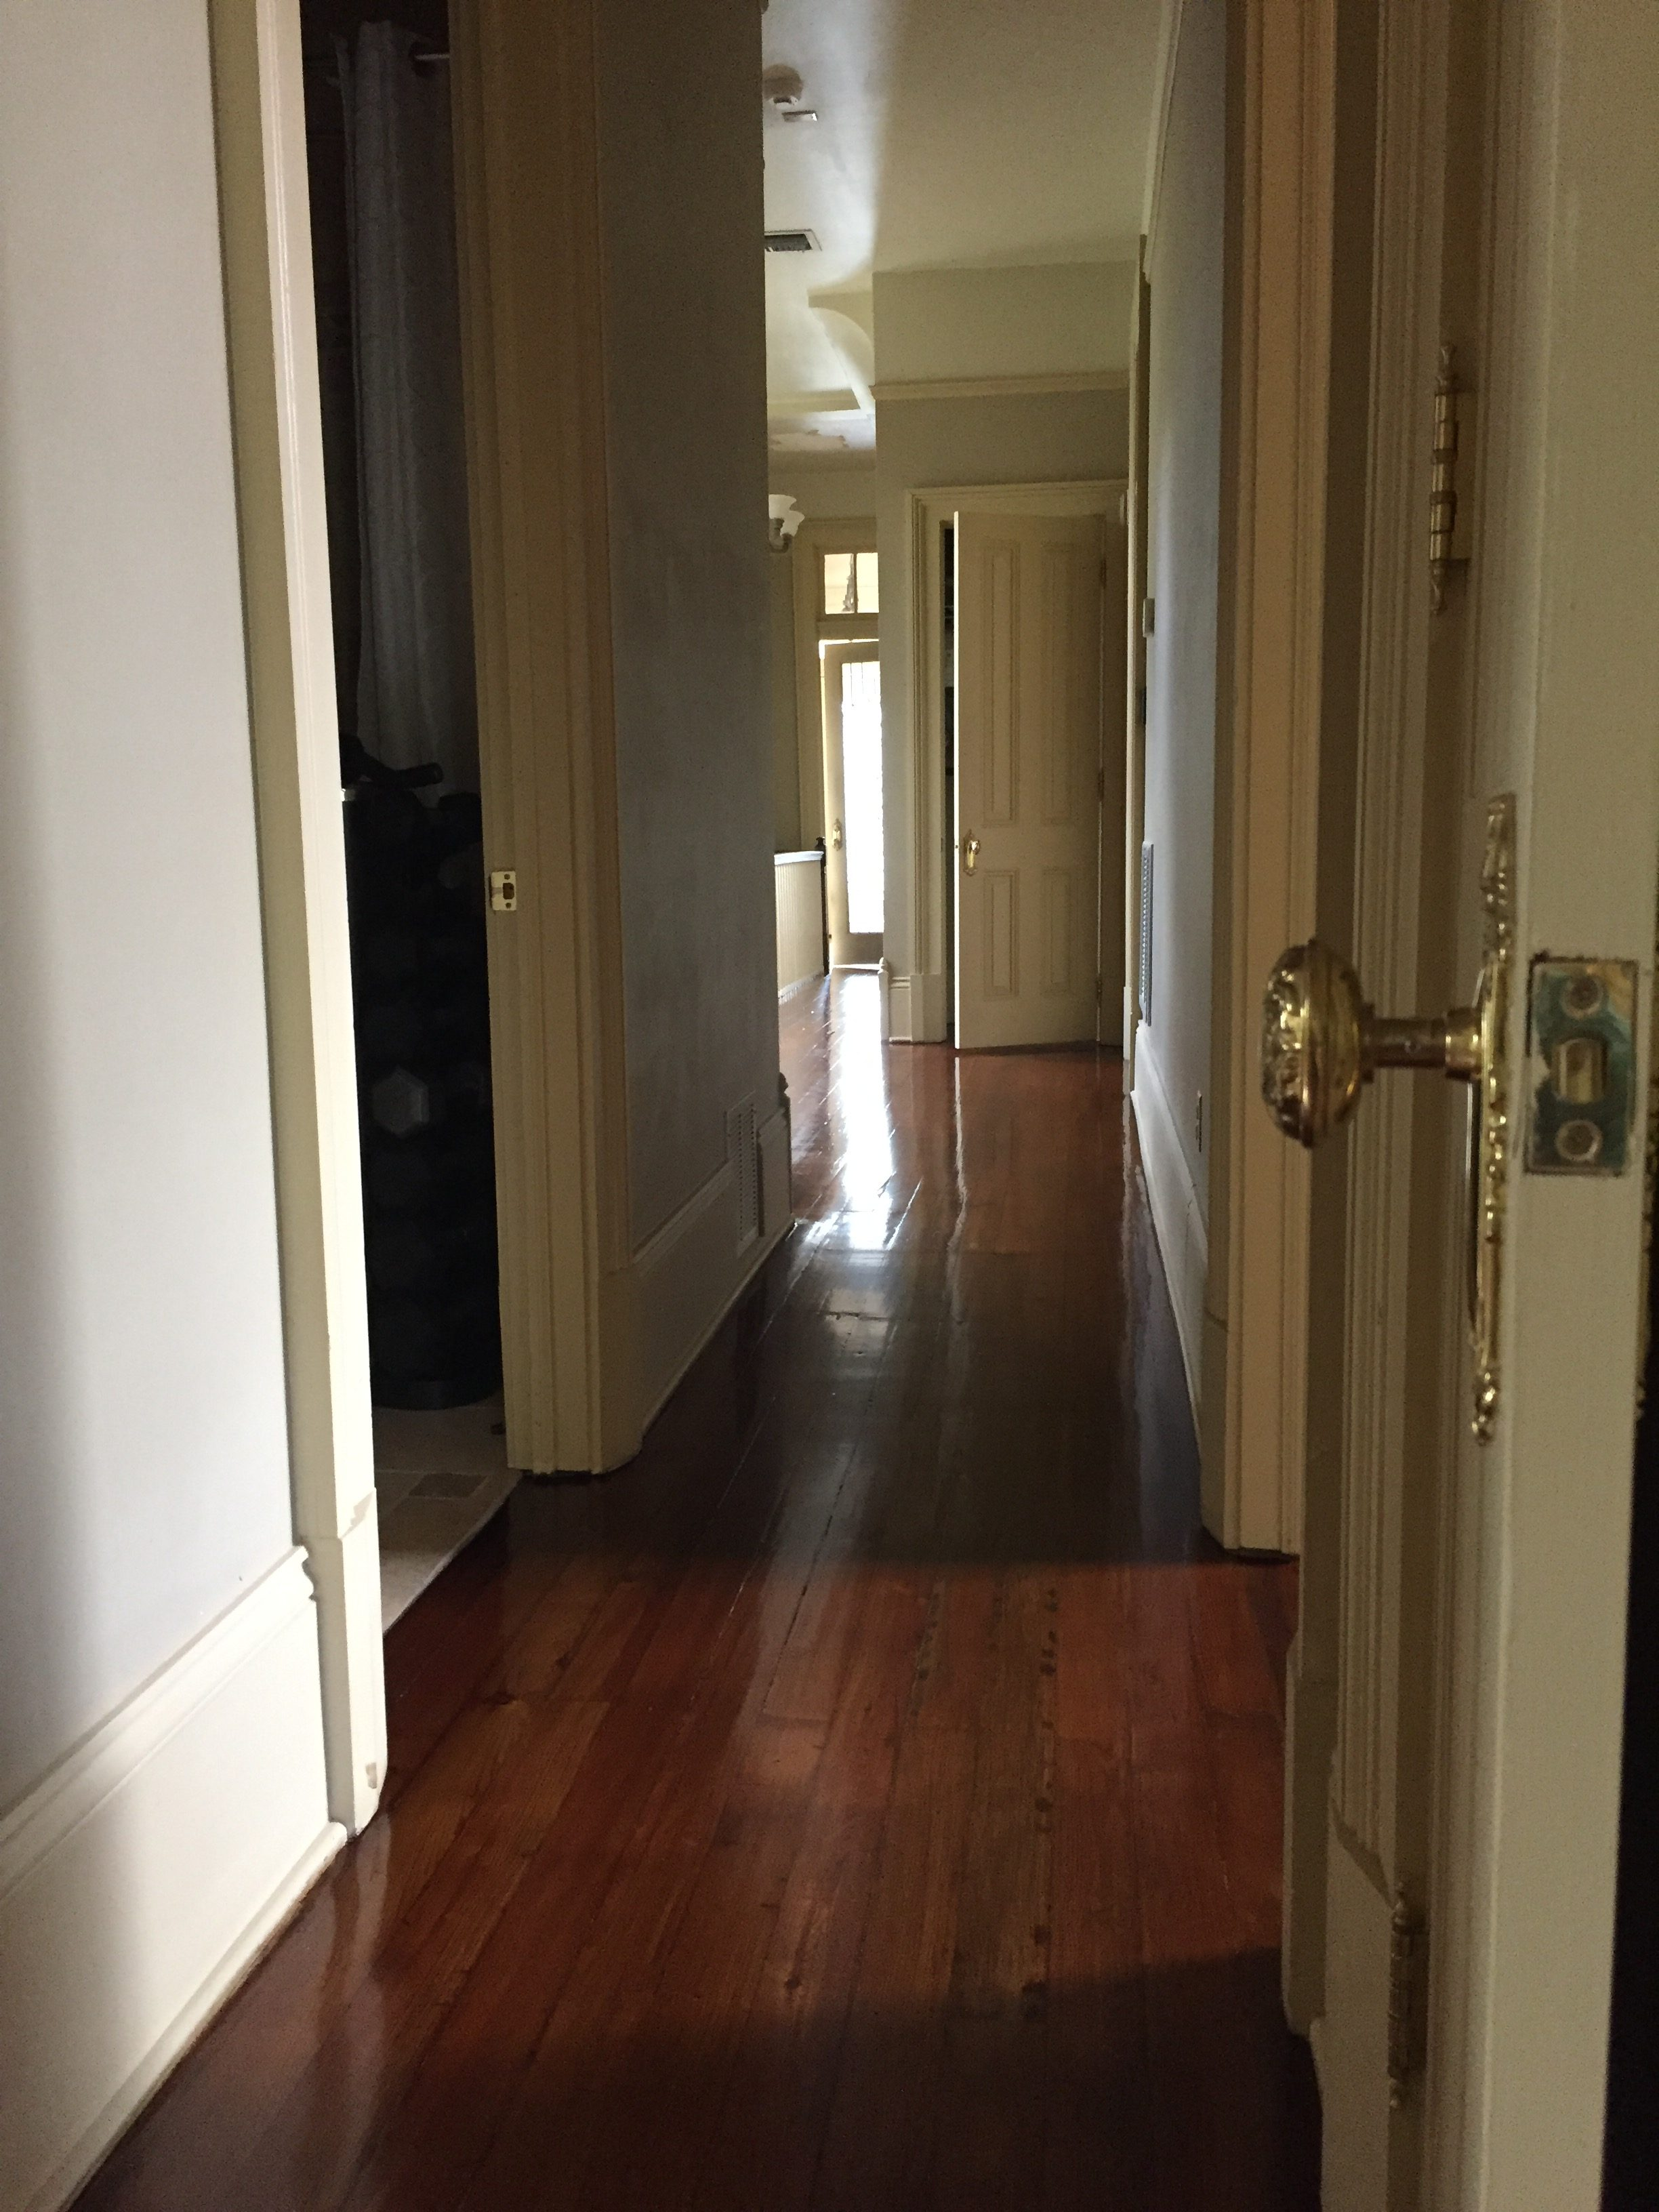 This is a hallway of refinished hardwood pine floors.